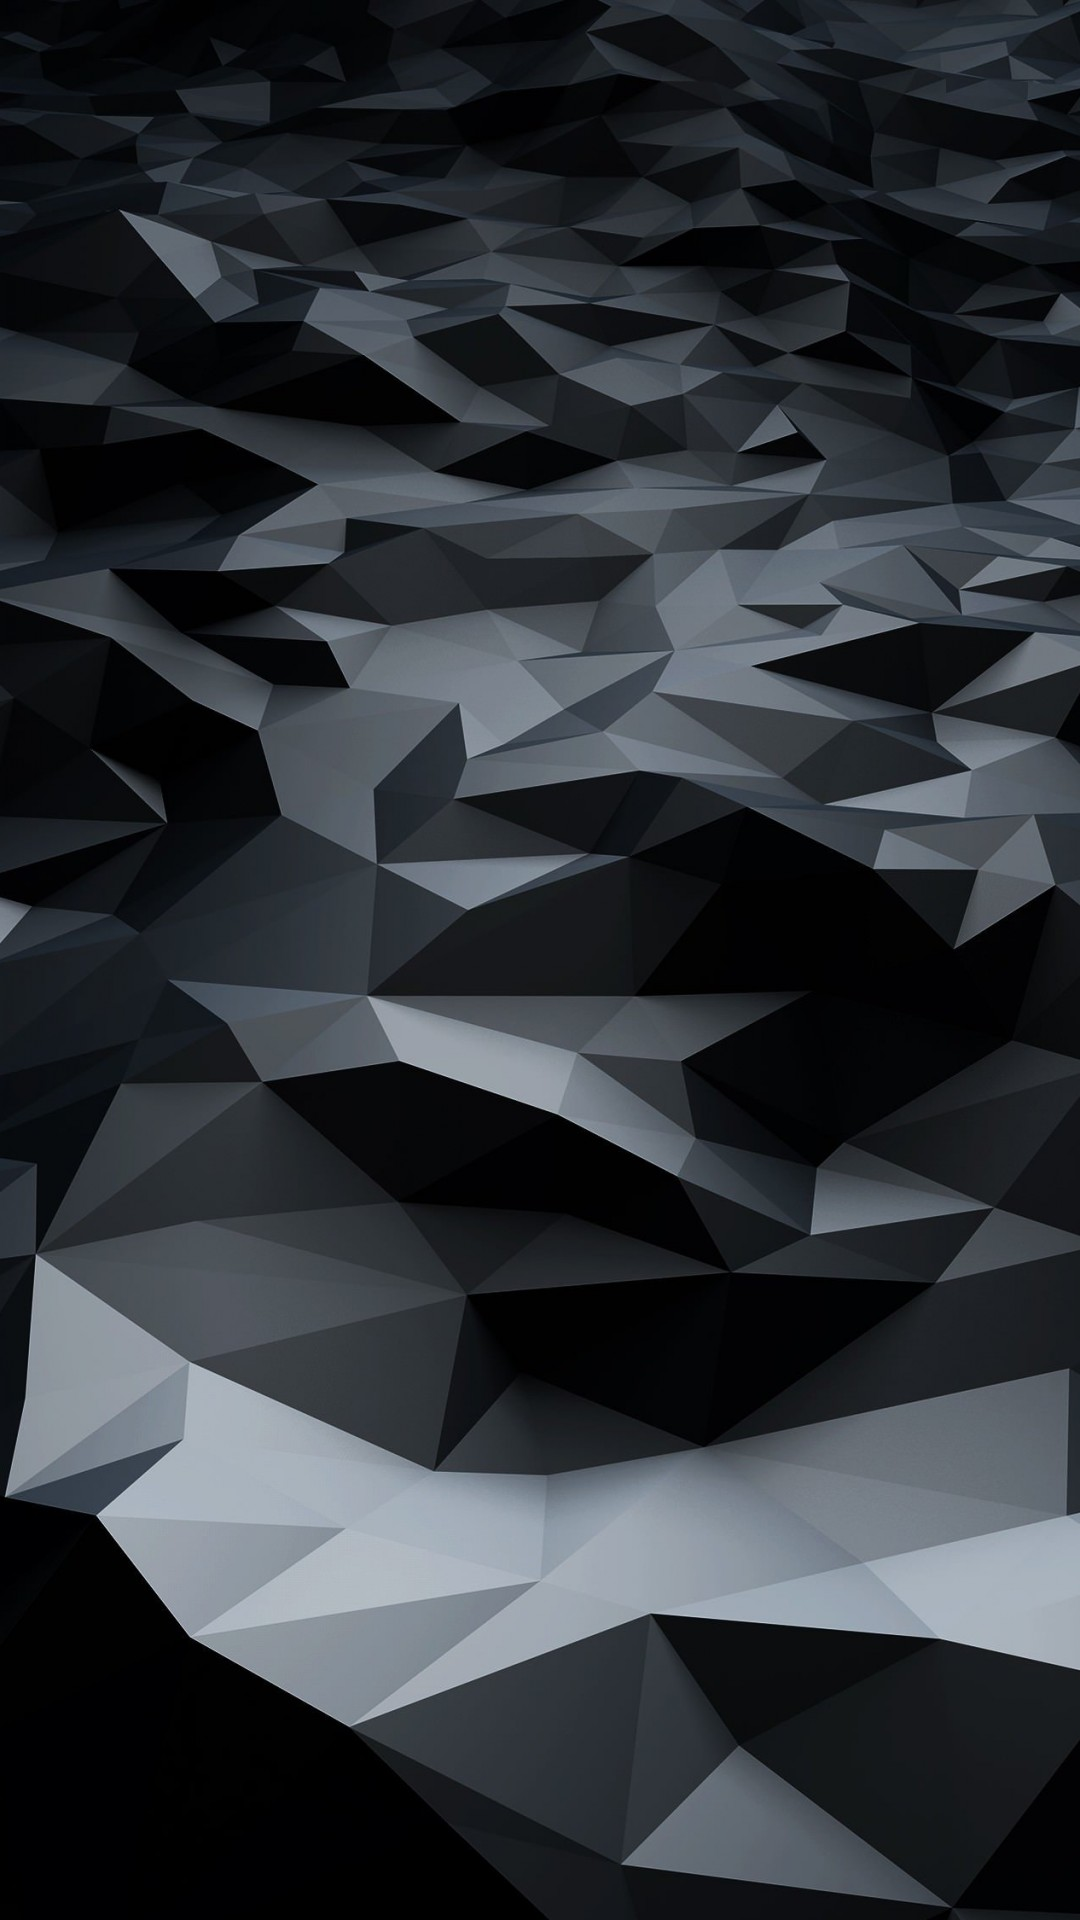 Abstract Black Low Poly Wallpaper for Motorola Moto X